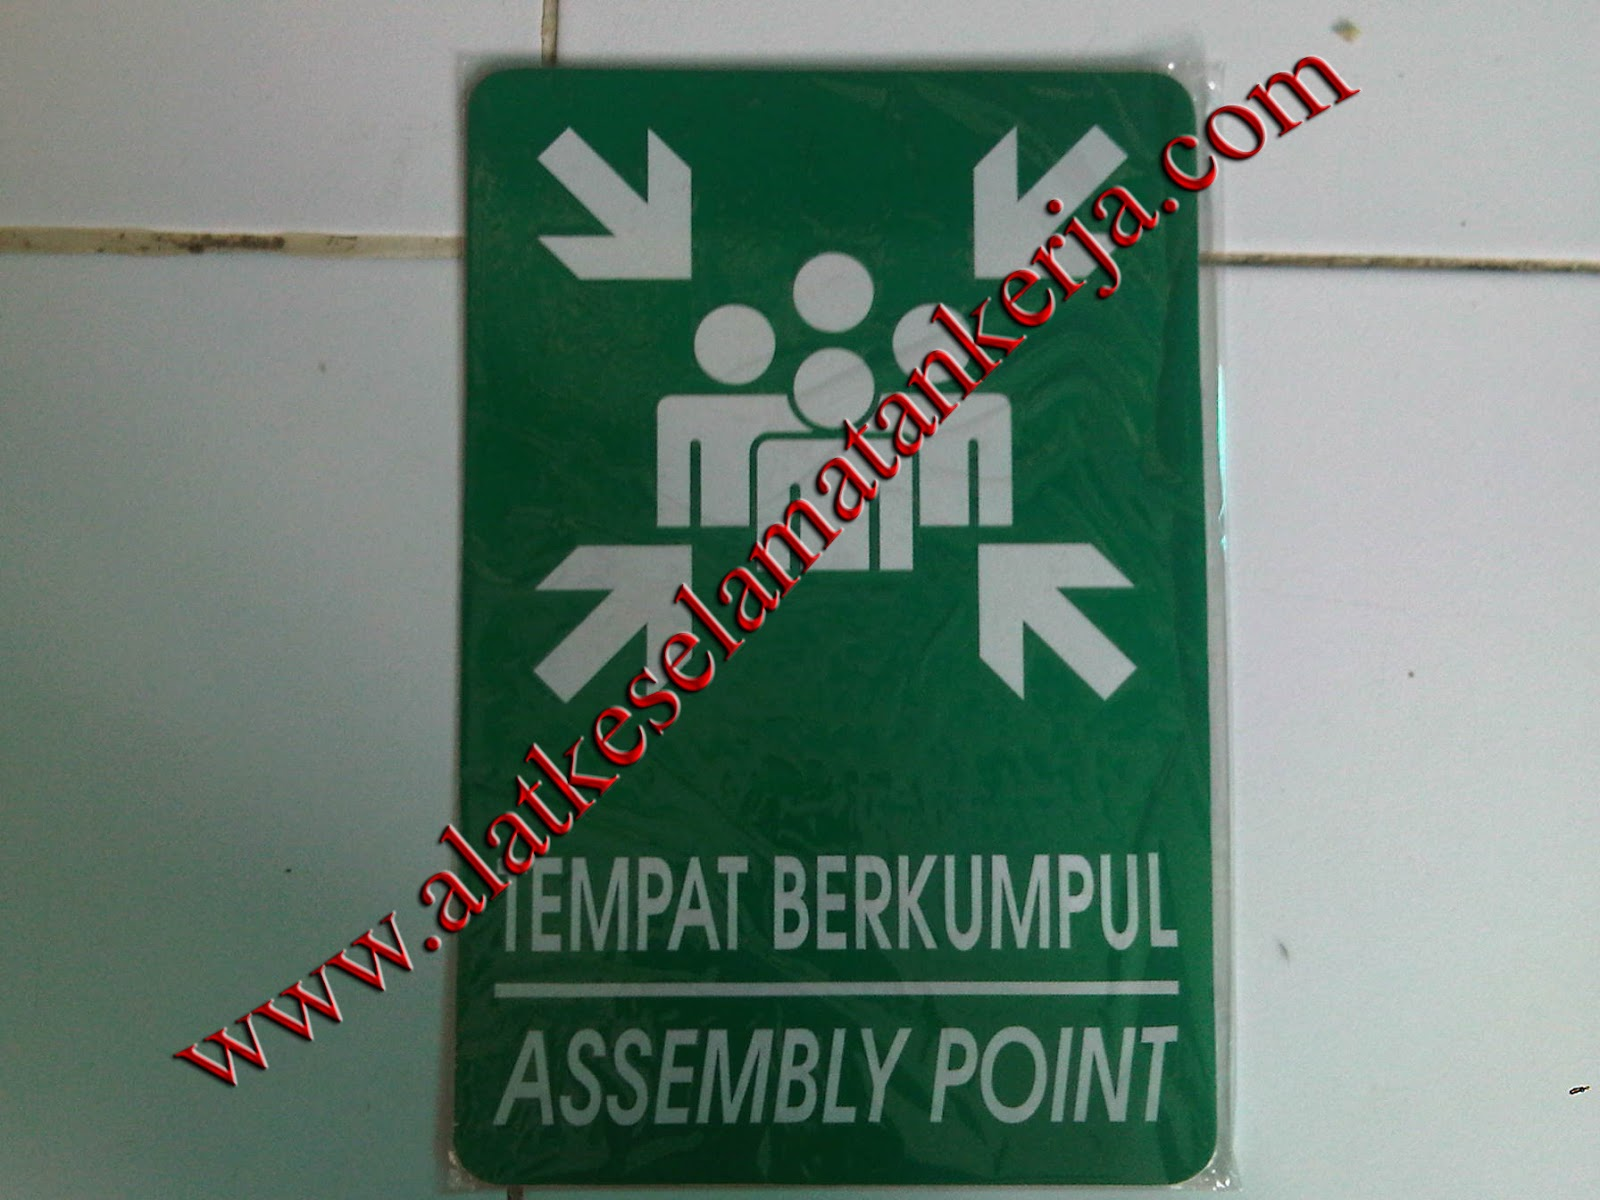 EMERGENCY EXIT LAMP AND SAFETY SIGN EXIT UNTUK GEDUNG BERTINGKAT EMERGENCY EXIT LAMP AND SAFETY SIGN EXIT untuk Gedung Bertingkat